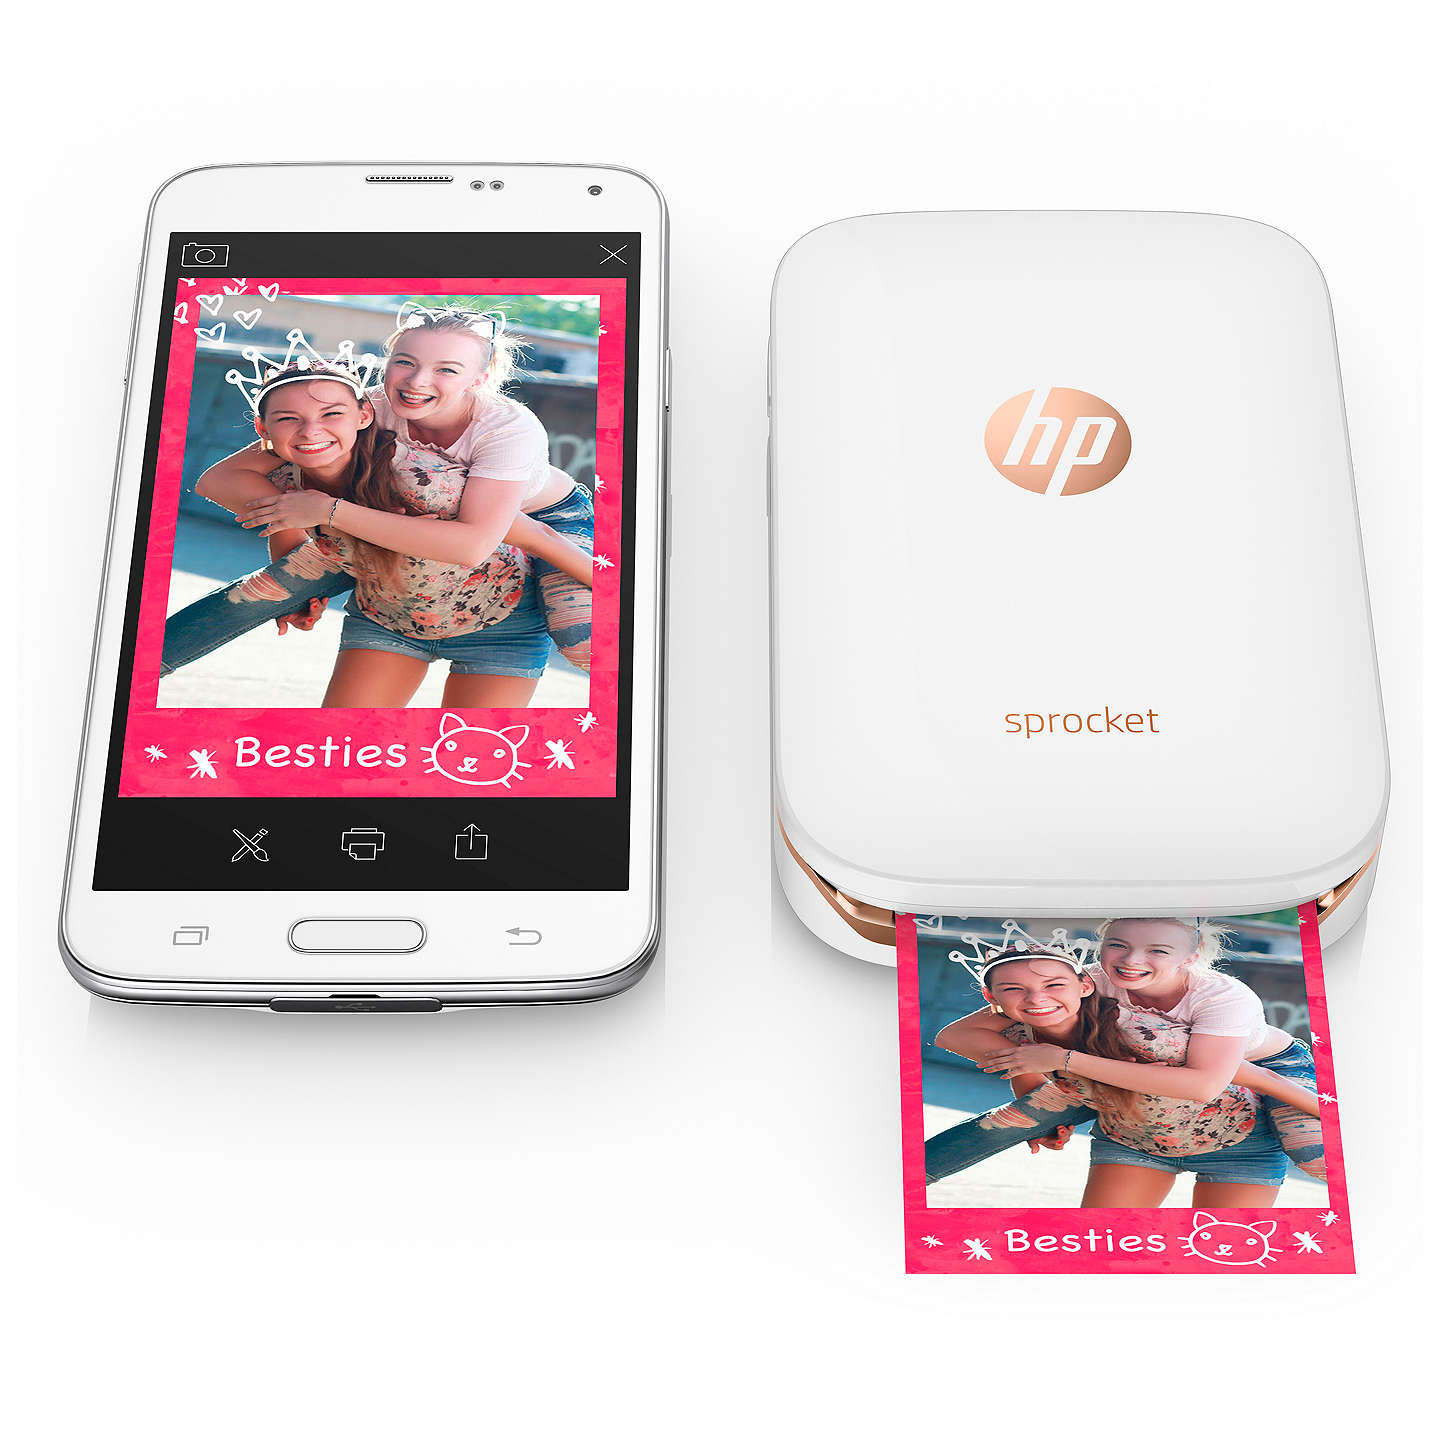 hp sprocket portable photo printer at john lewis. Black Bedroom Furniture Sets. Home Design Ideas